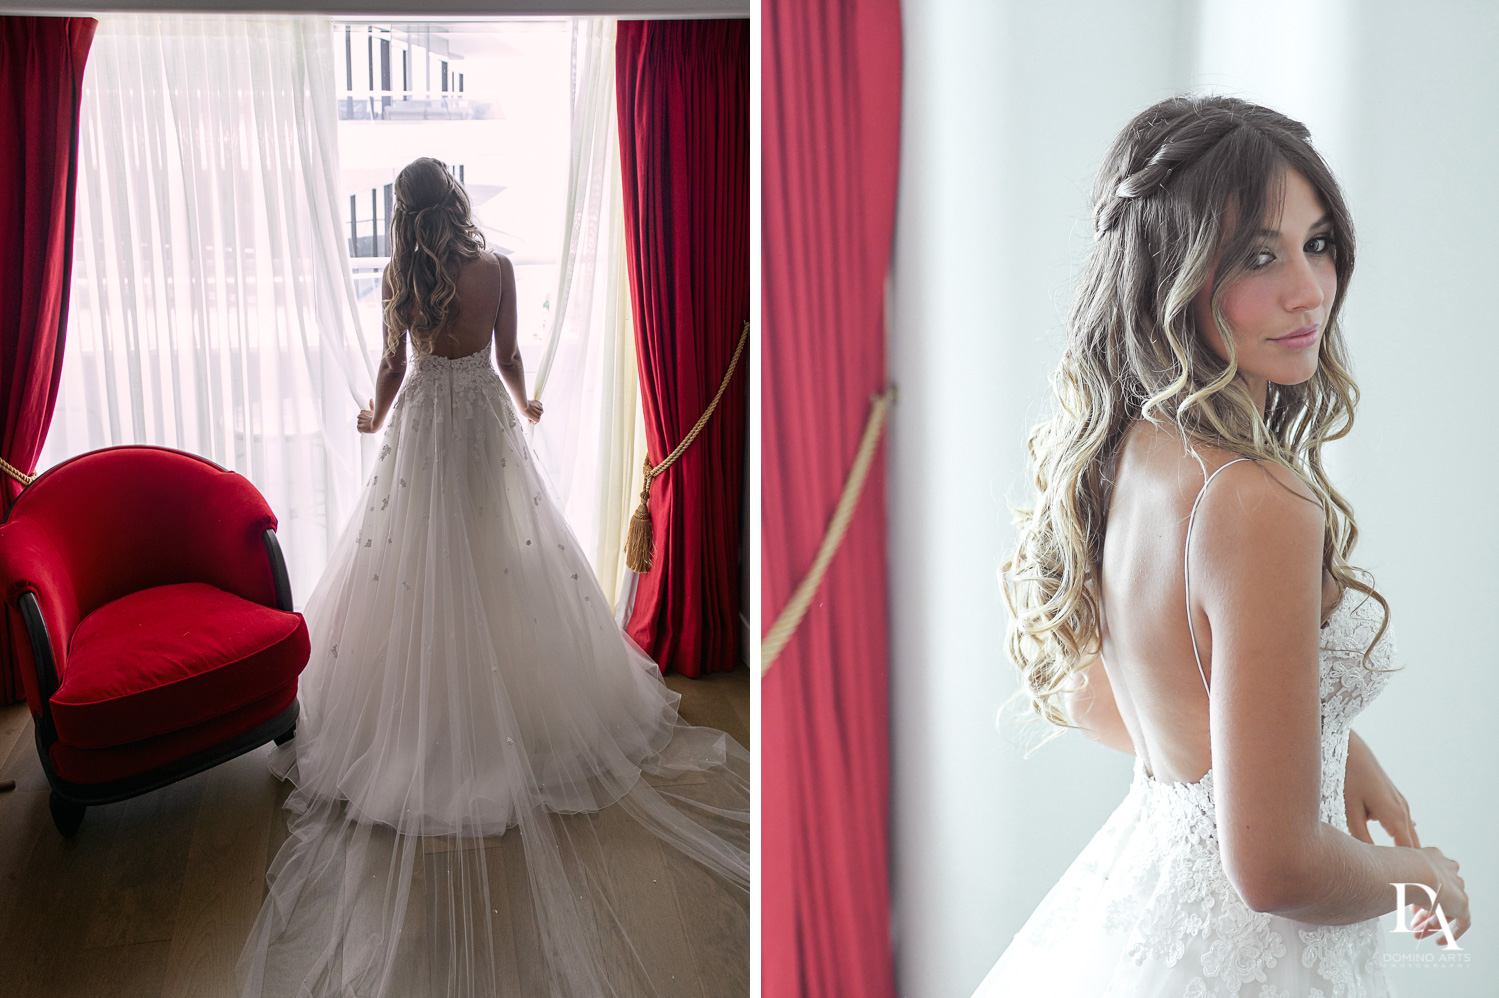 Bride getting ready picture at Faena Hotel Miami Beach